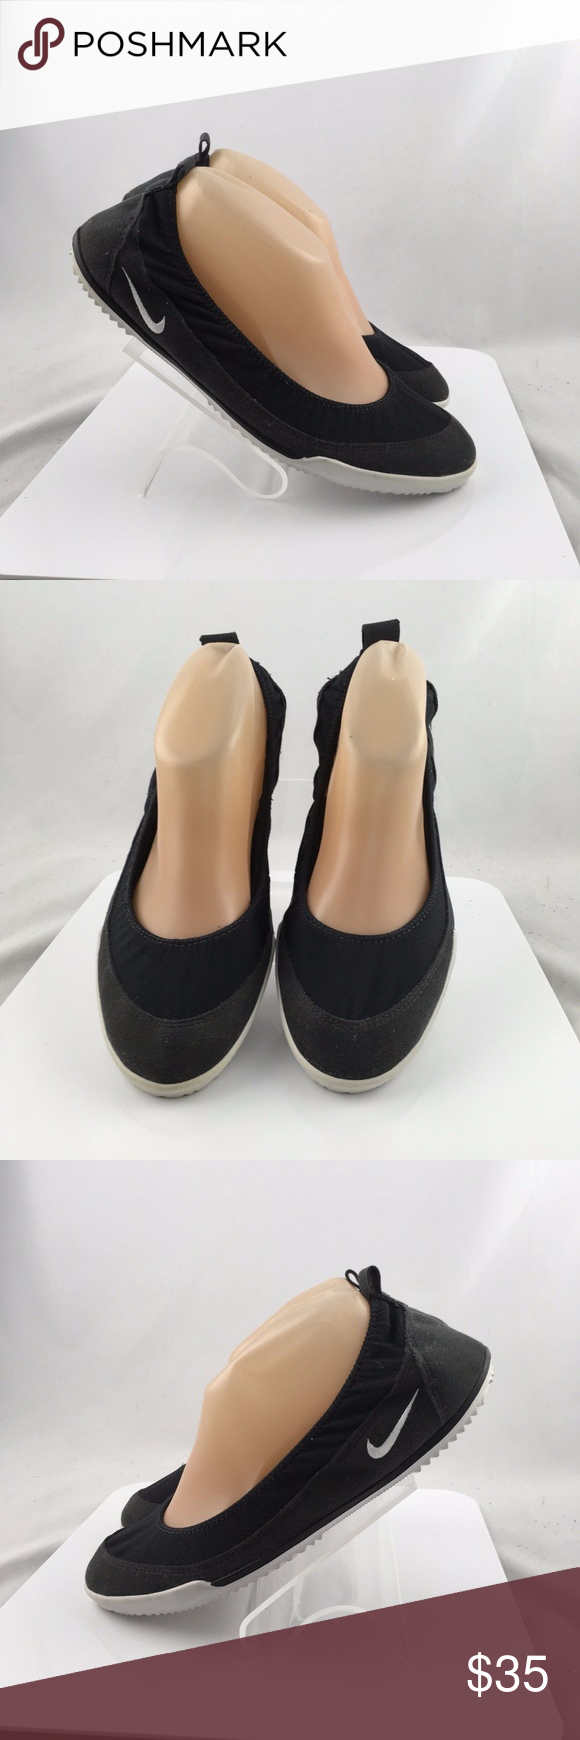 Nike Studio Ballet Flats Athletic Shoes New Nike Studio Ballet Flats  Training Athletic Shoes Womens Size 9.5M black Nike Shoes Flats   Loafers e66b2473a